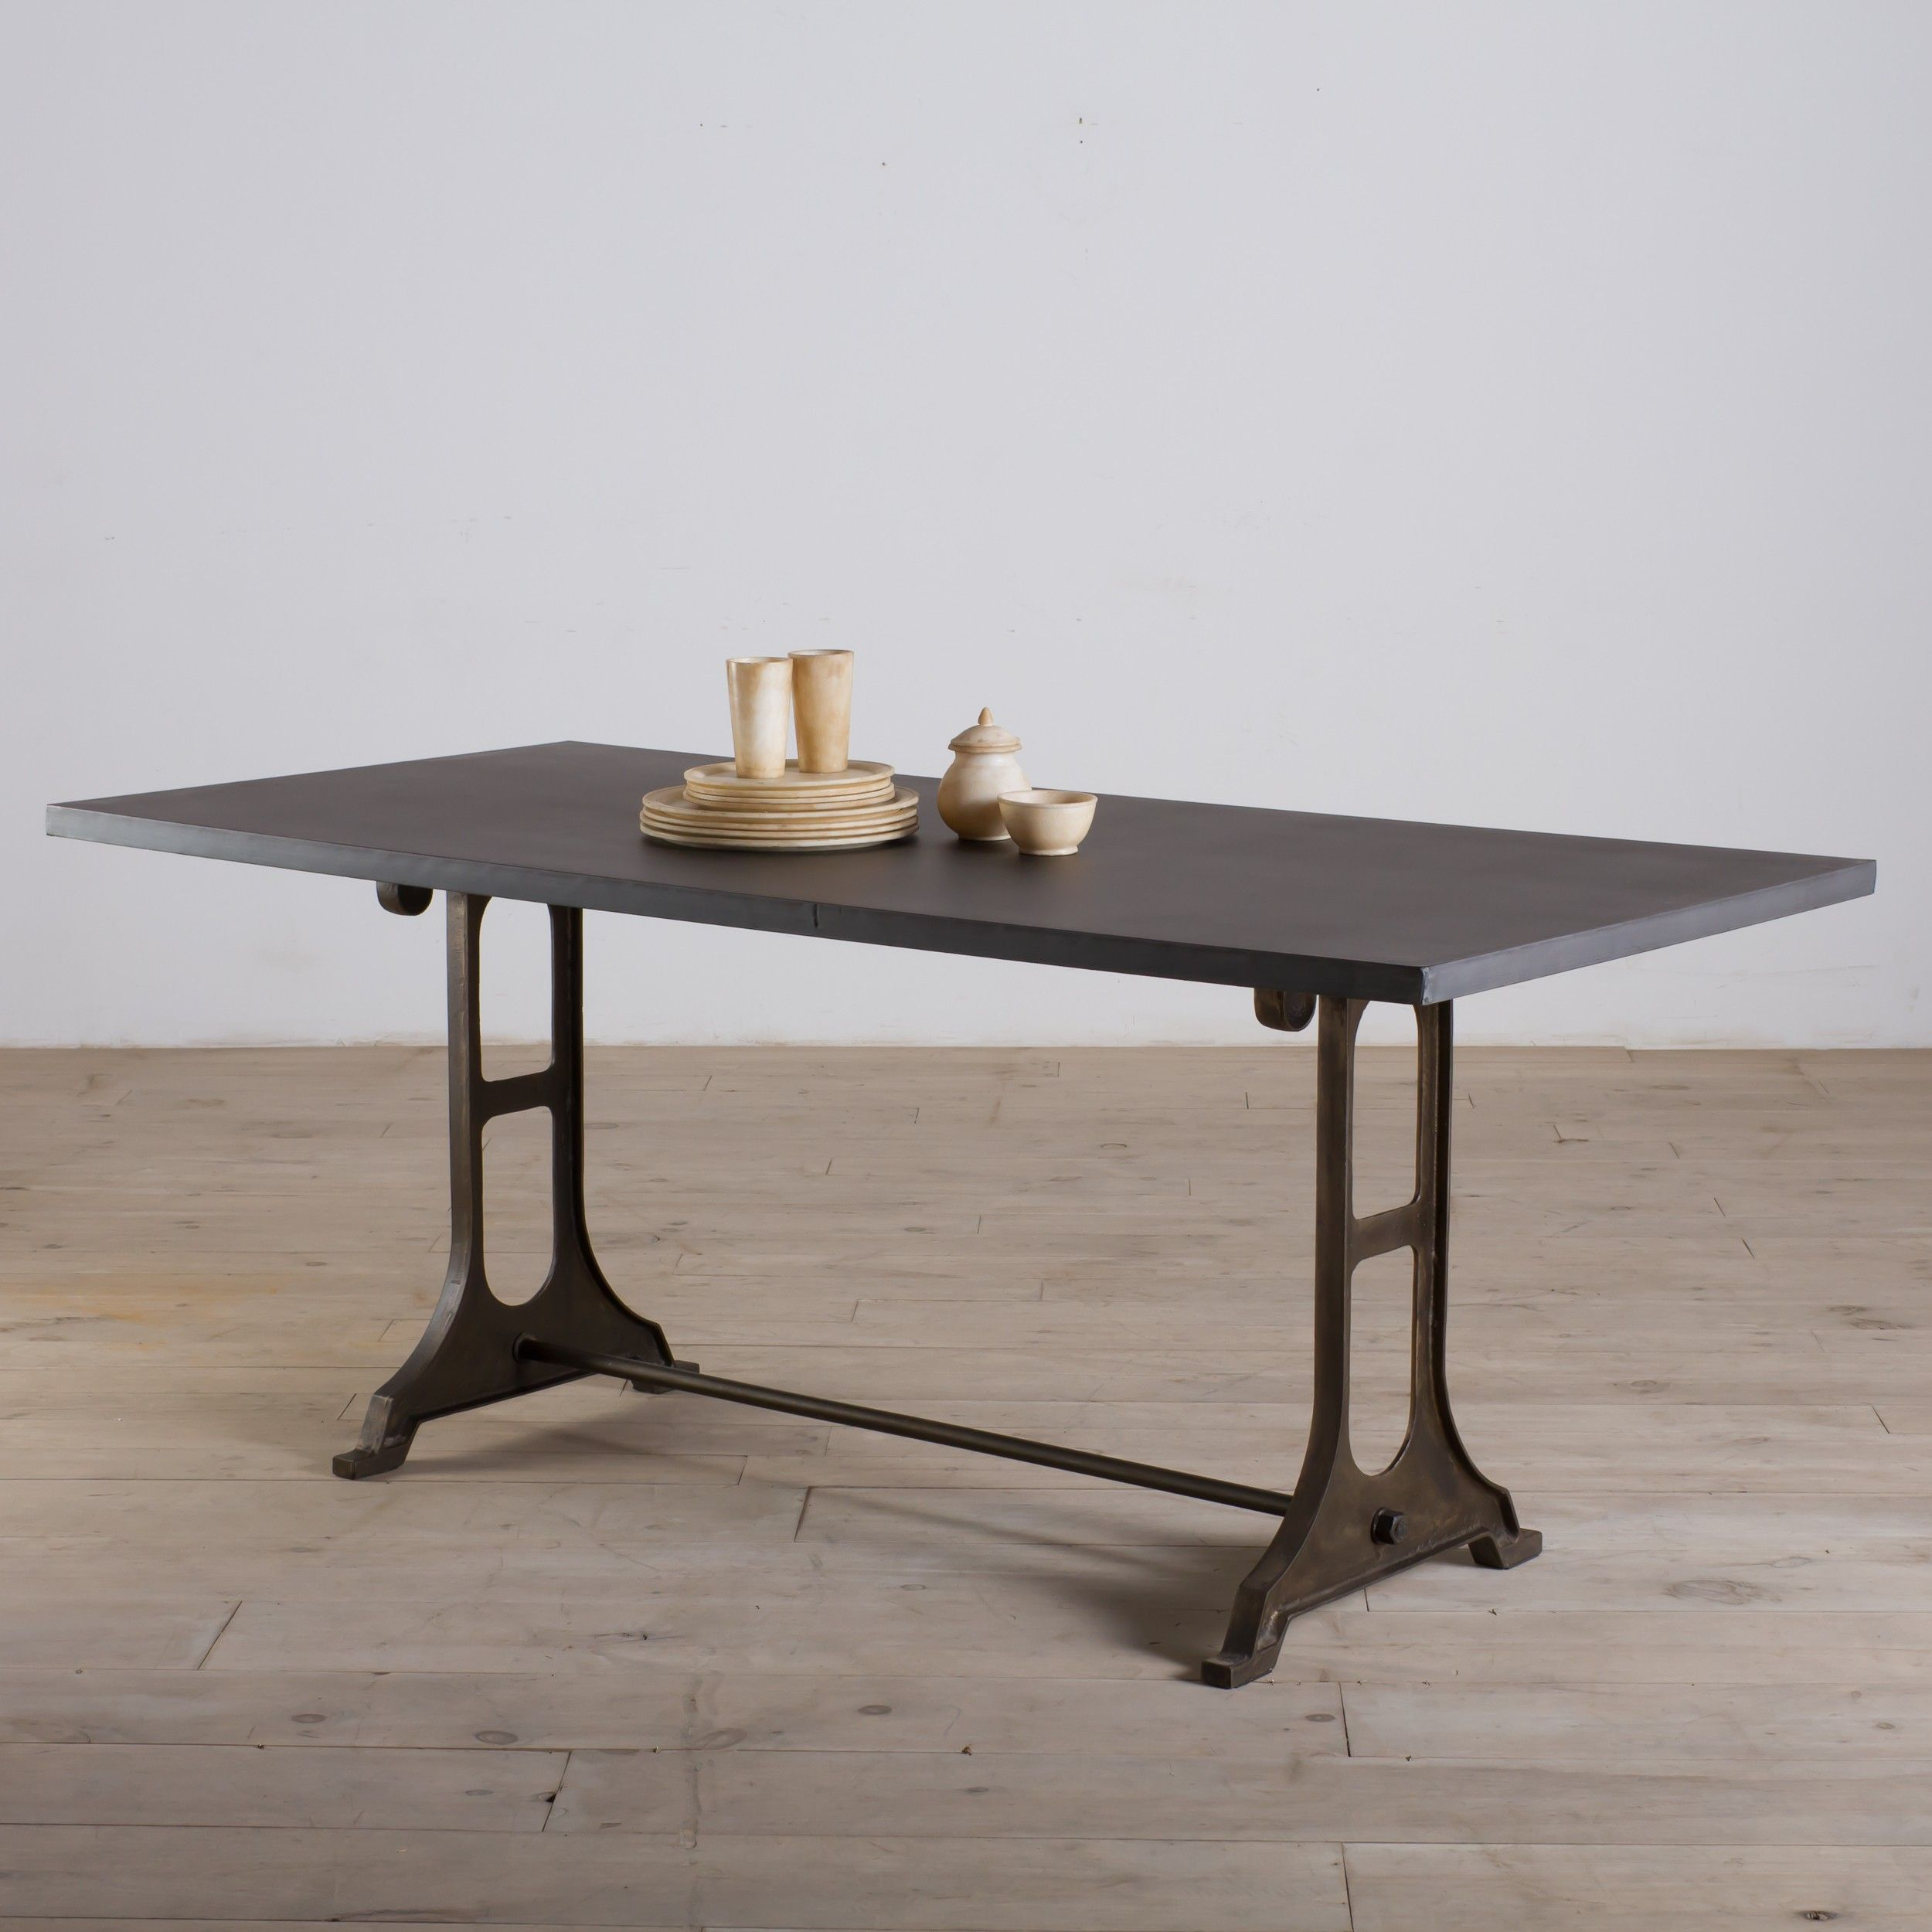 Zinc Finish Furniture Gwalior Dining Table Zinc Finish From Cg Sparks Things I Want